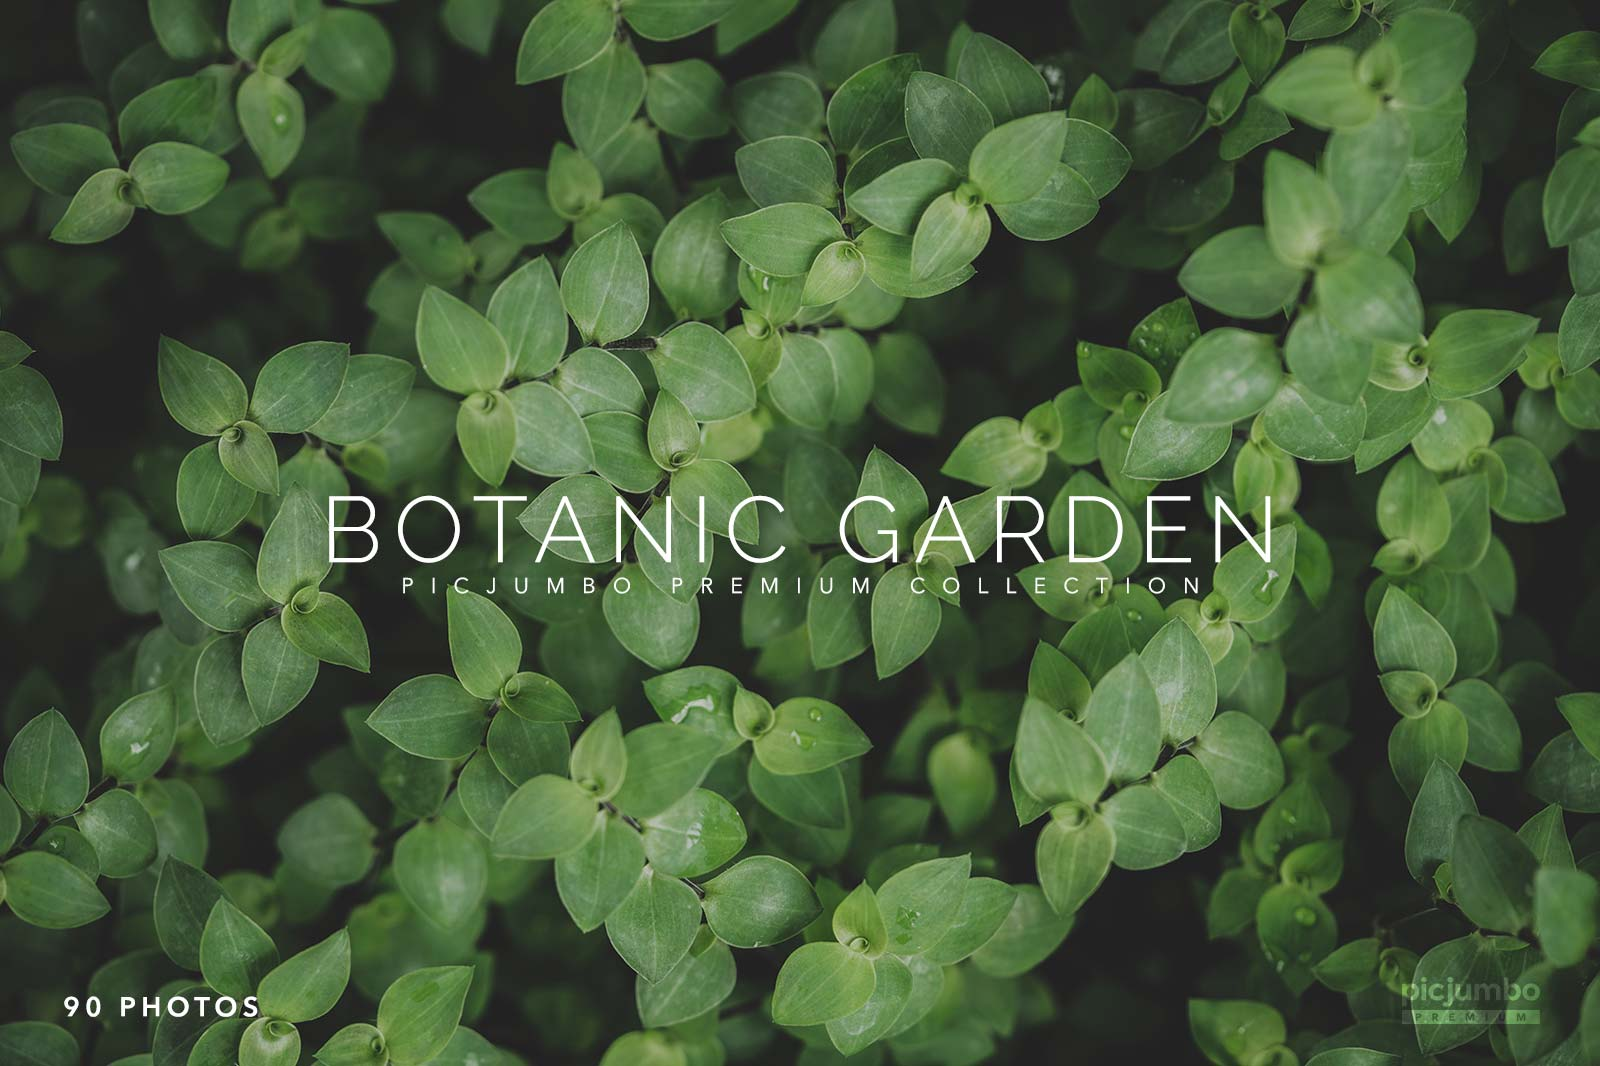 Join PREMIUM and get full collection now: Botanic Garden